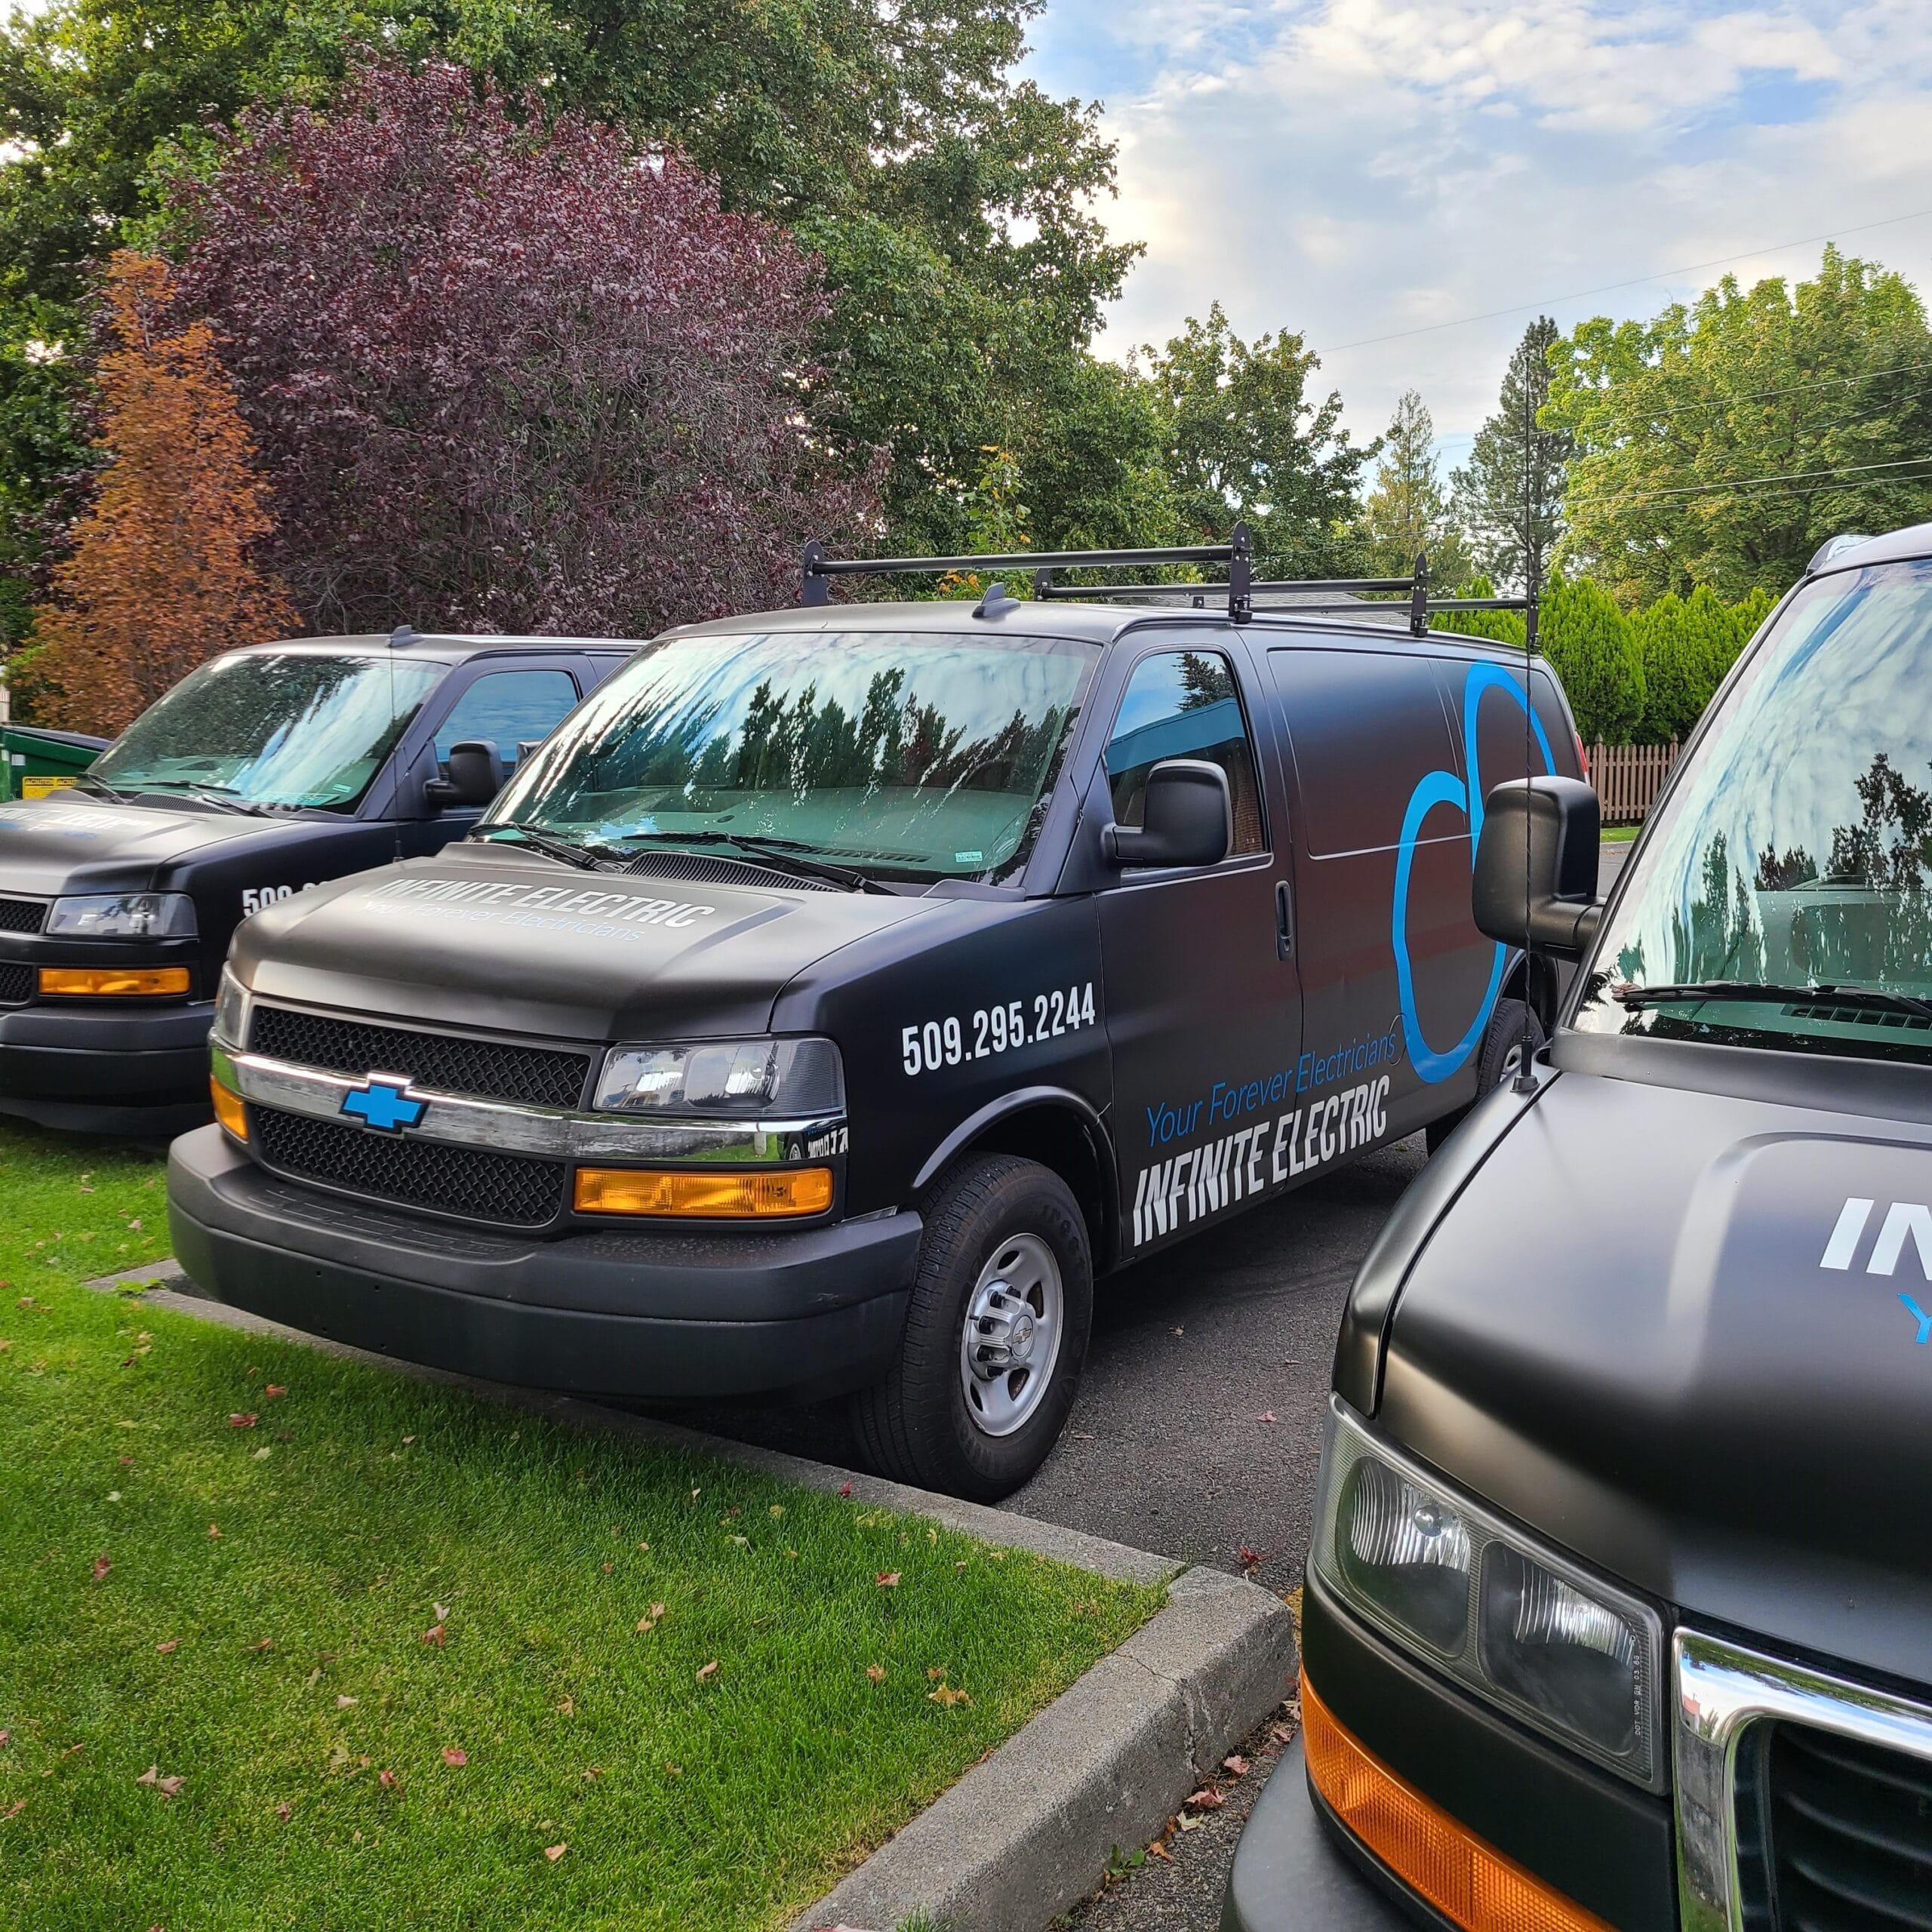 Fleet of Infinite Electric Vans